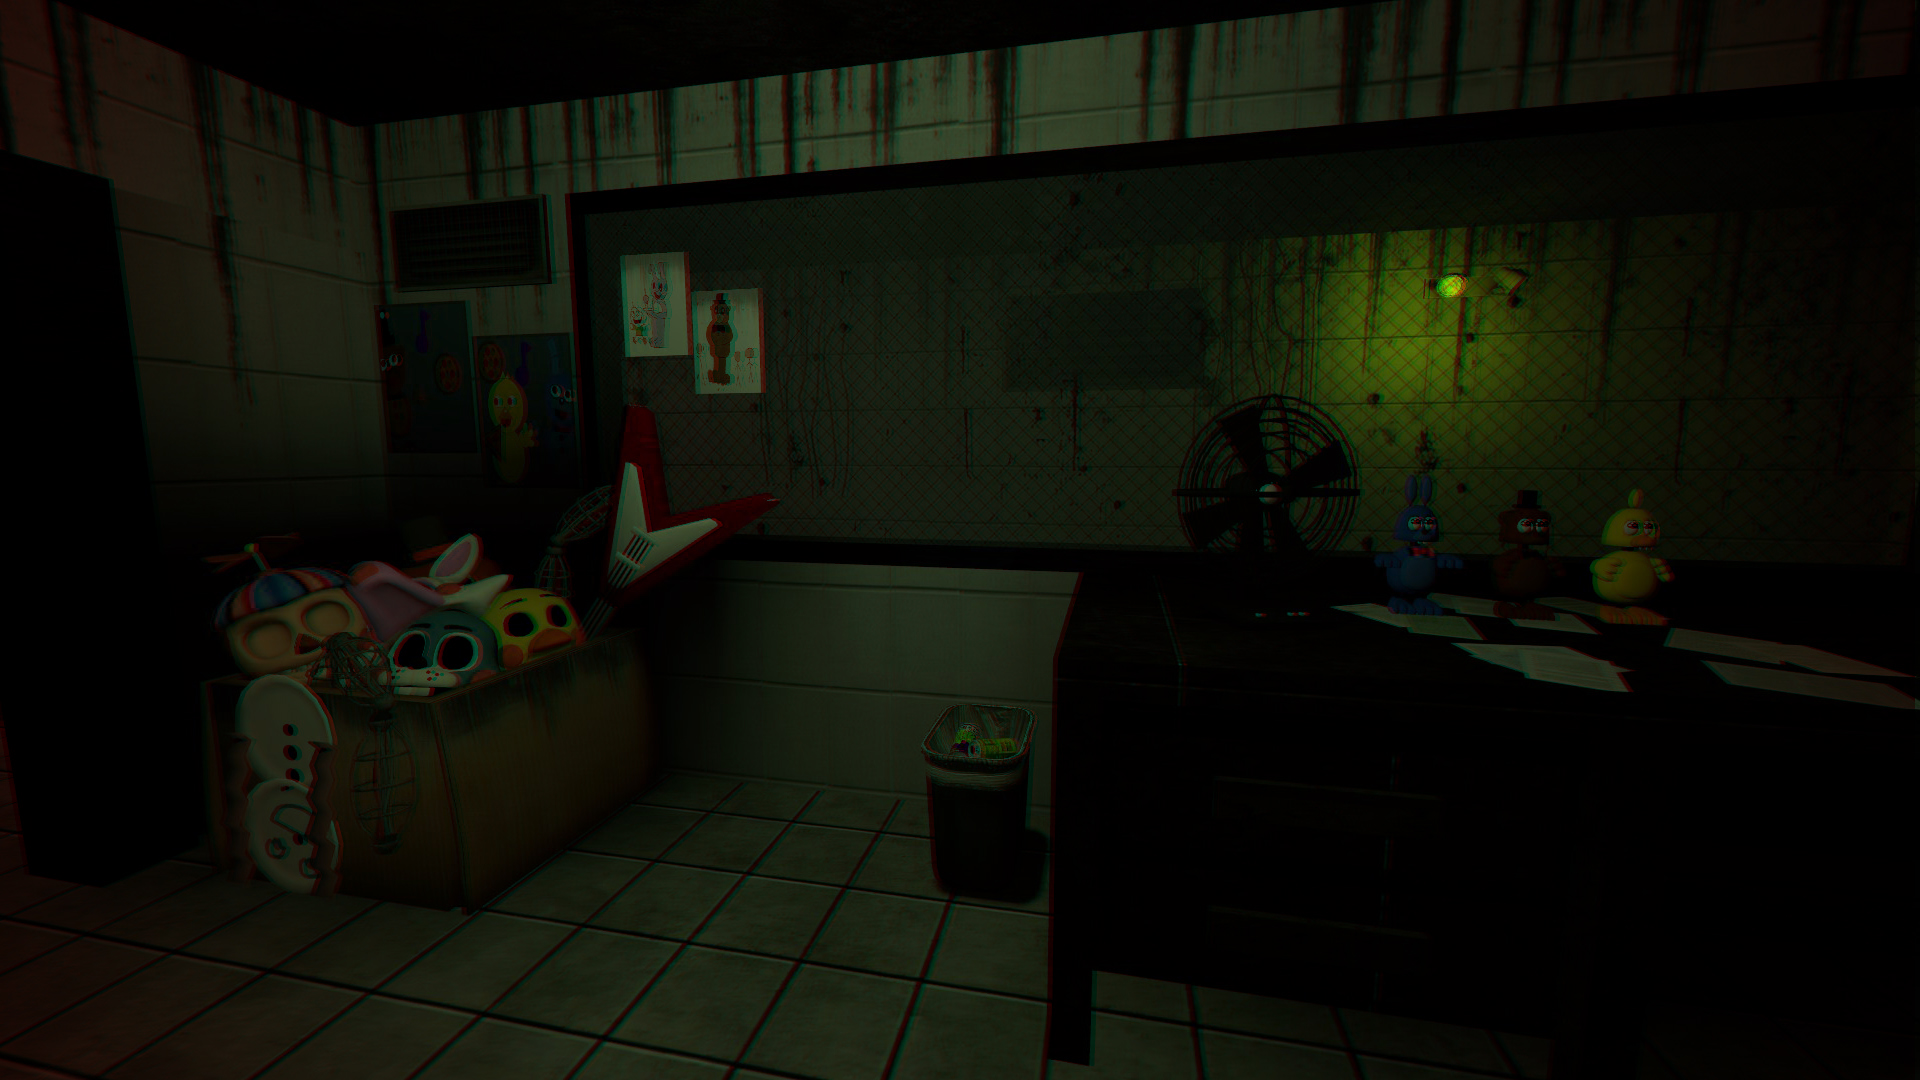 Steam community fnaf 3 office updated - Doge steam background ...